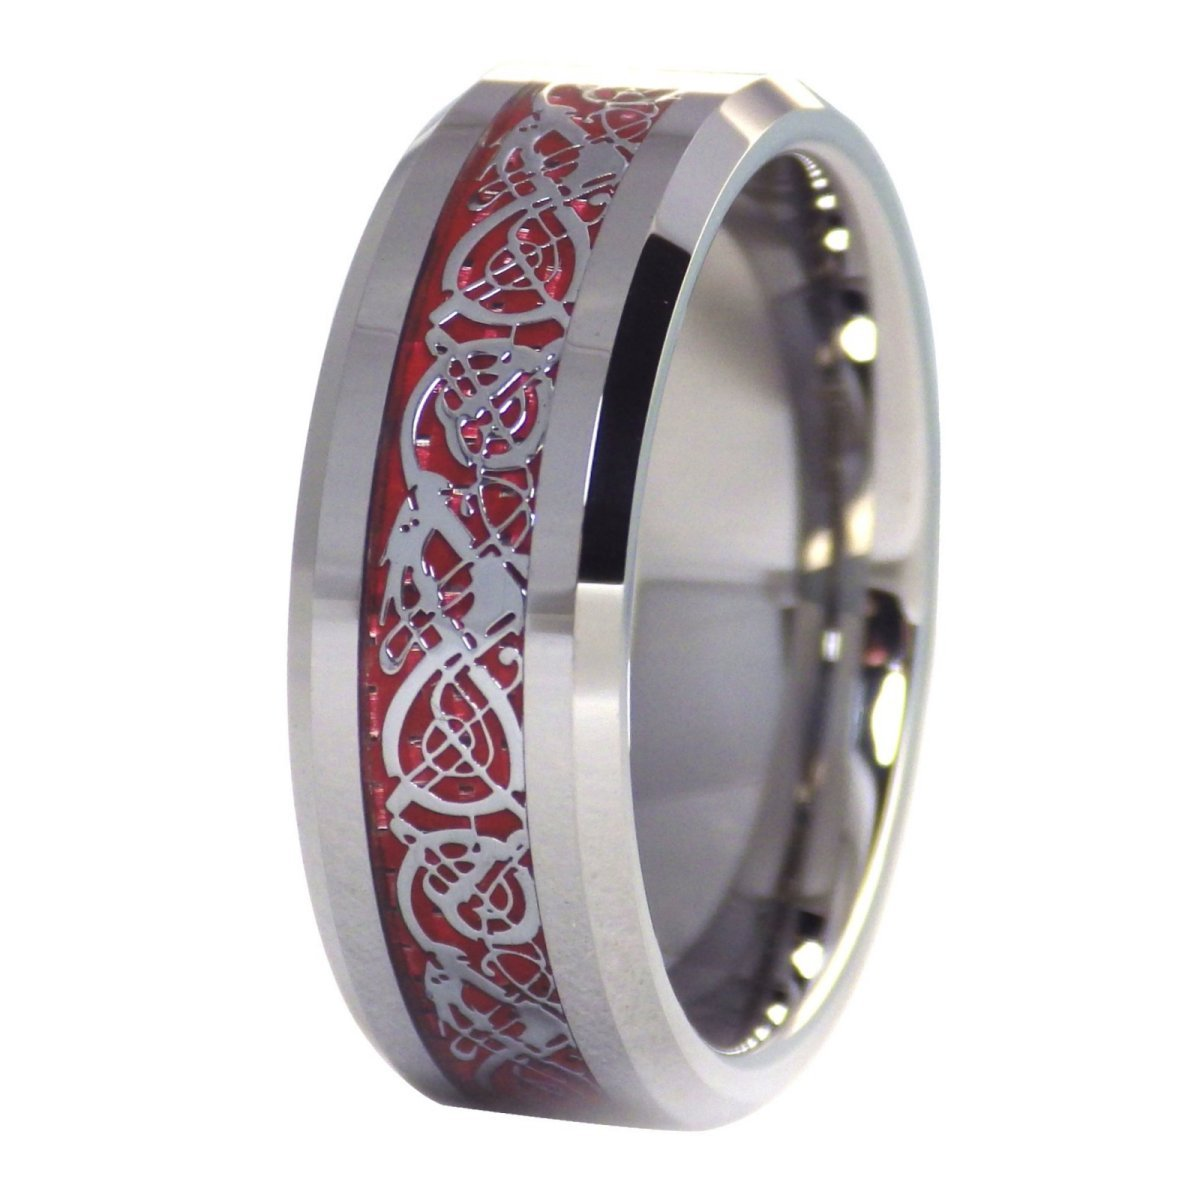 Fantasy Forge Jewelry Celtic Fire Red Dragon Ring Tungsten Wedding Band Size 7.5